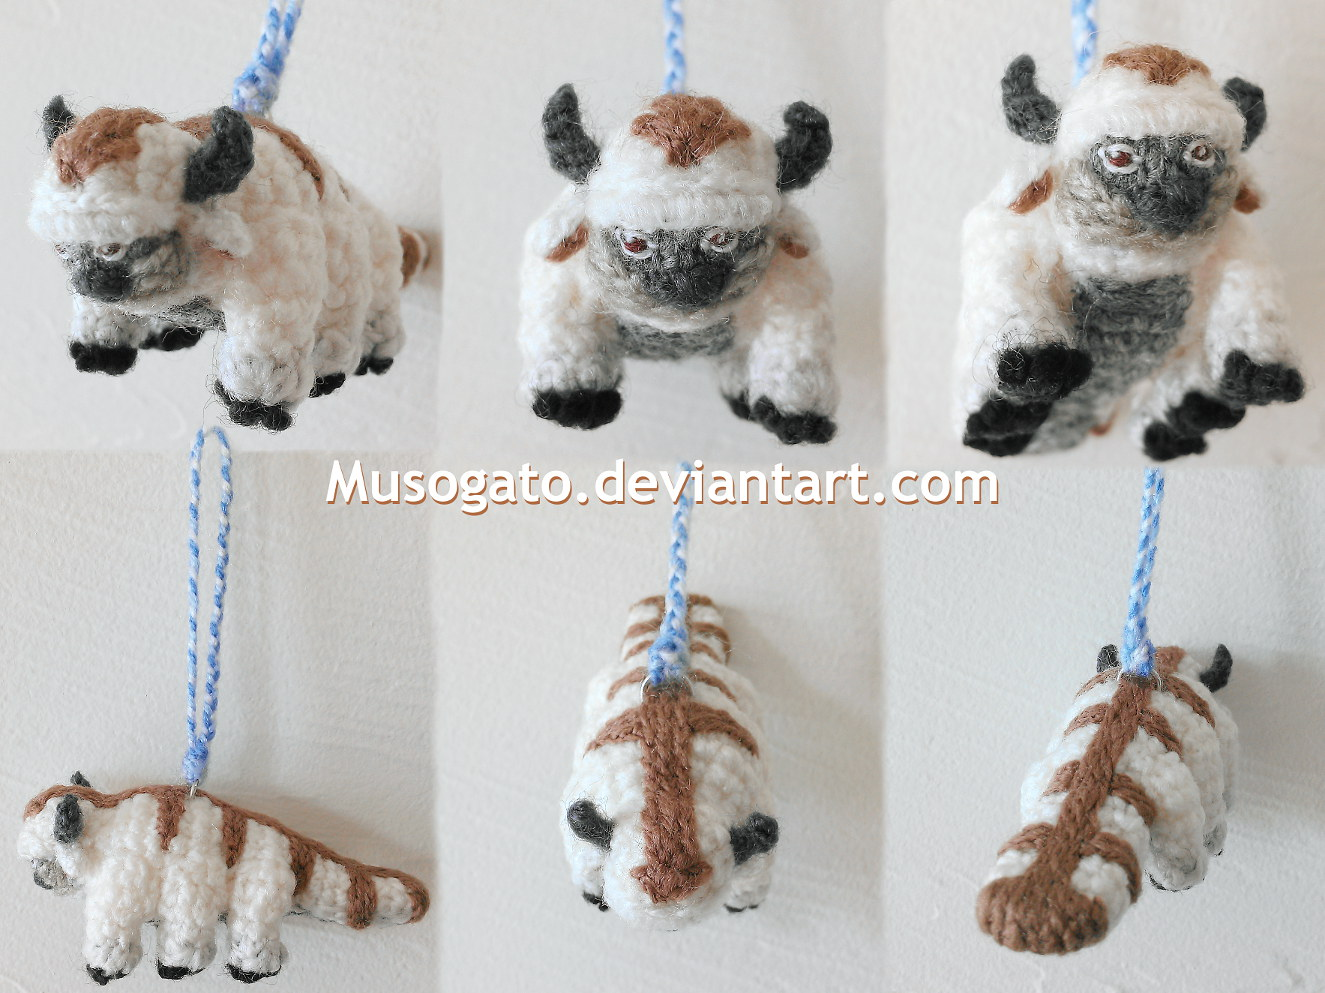 Appa Knitted PDF Pattern - From Avatar the Last Airbender ... | 993x1325